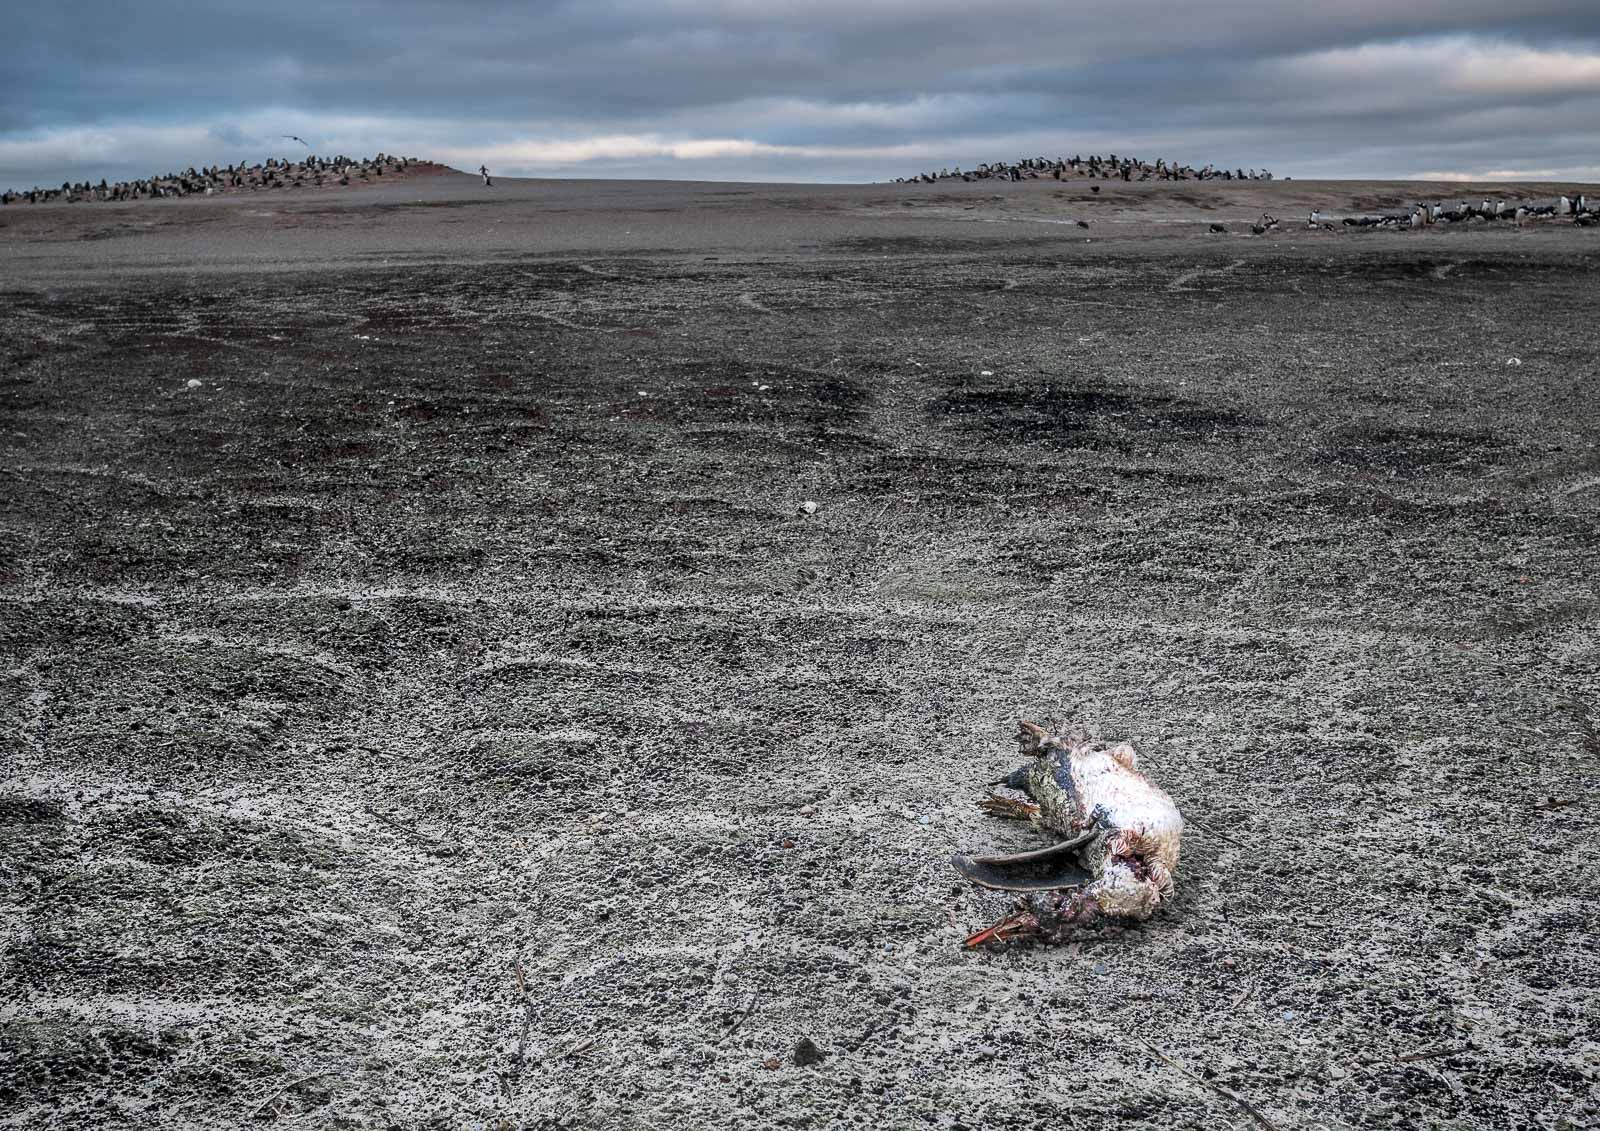 A vulture-pecked, decaying penguin carcass lies on the sand dunes of The Neck. Gentoo rookeries can be seen in the background.  Lumix GM5 12-32mm f3.5-5.6 at 21mm; 1/160sec f4.7 ISO 400